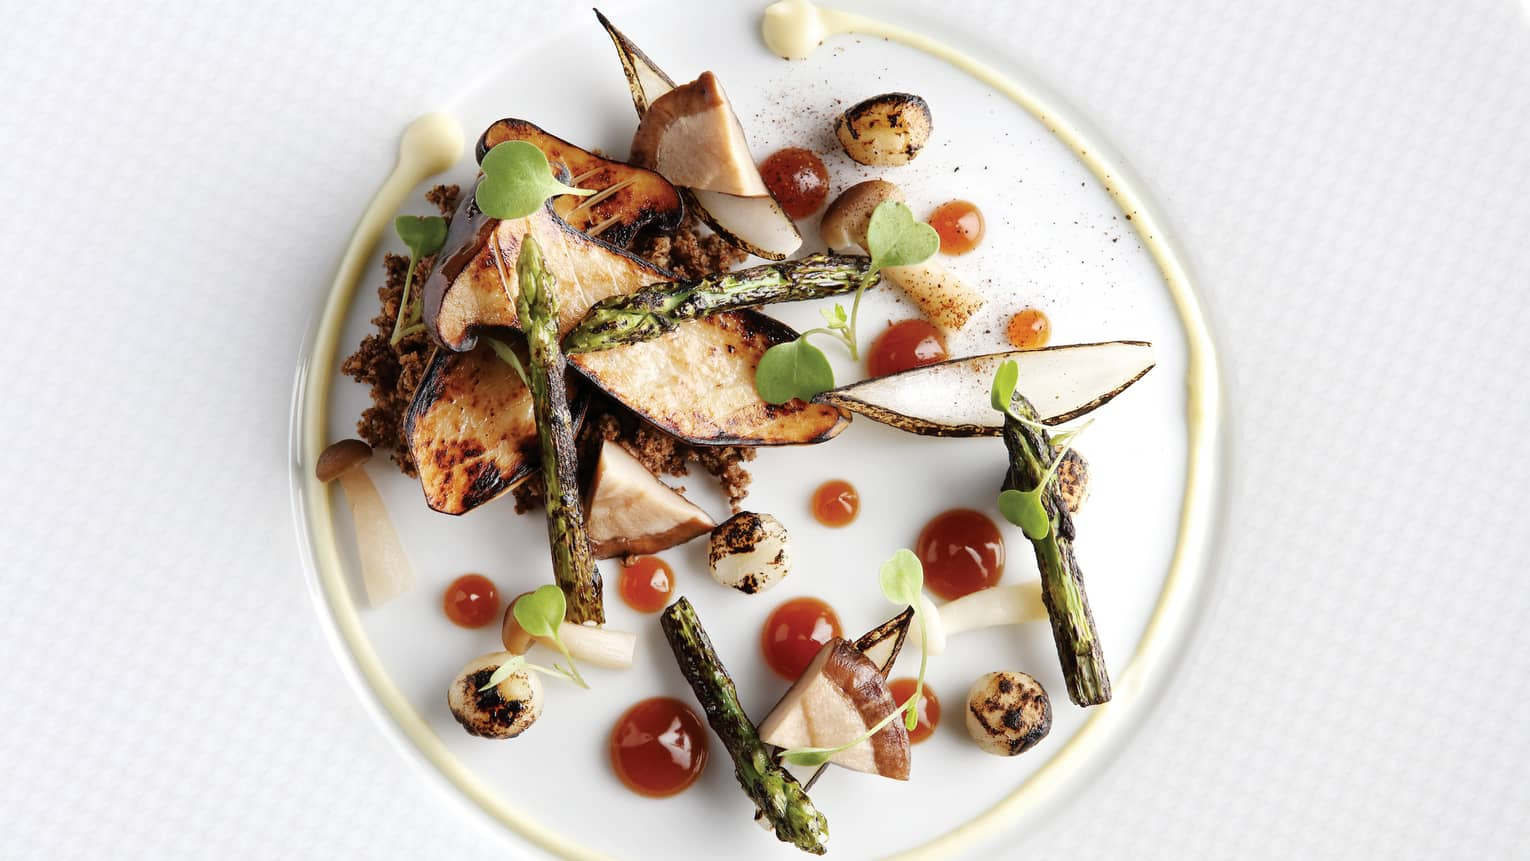 Grilled King Oyster Mushrooms, asparagus and mushrooms on white plate